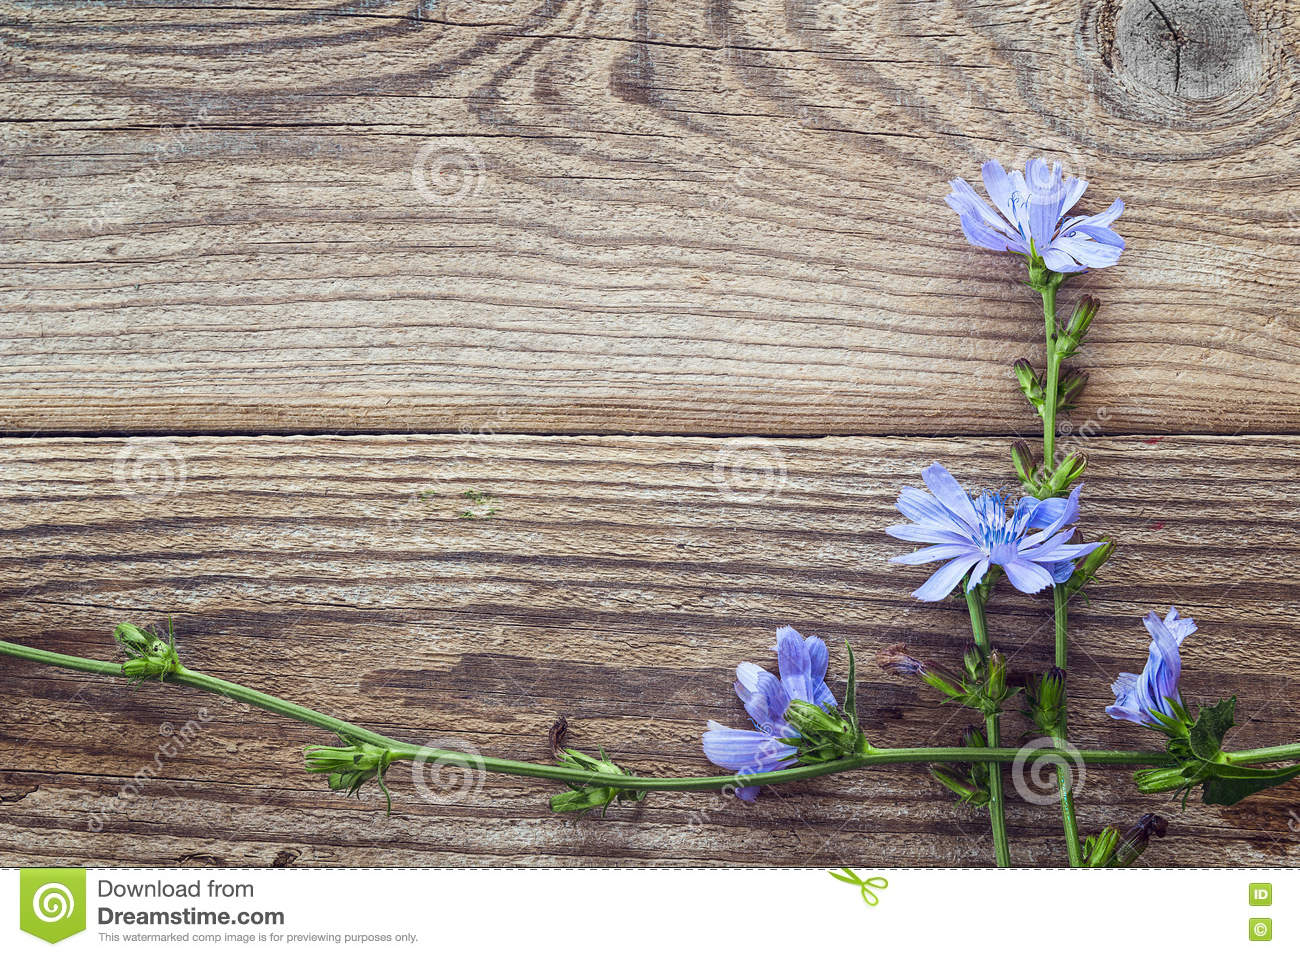 Background with flowers of chicory on the old wooden boards. Place for text.